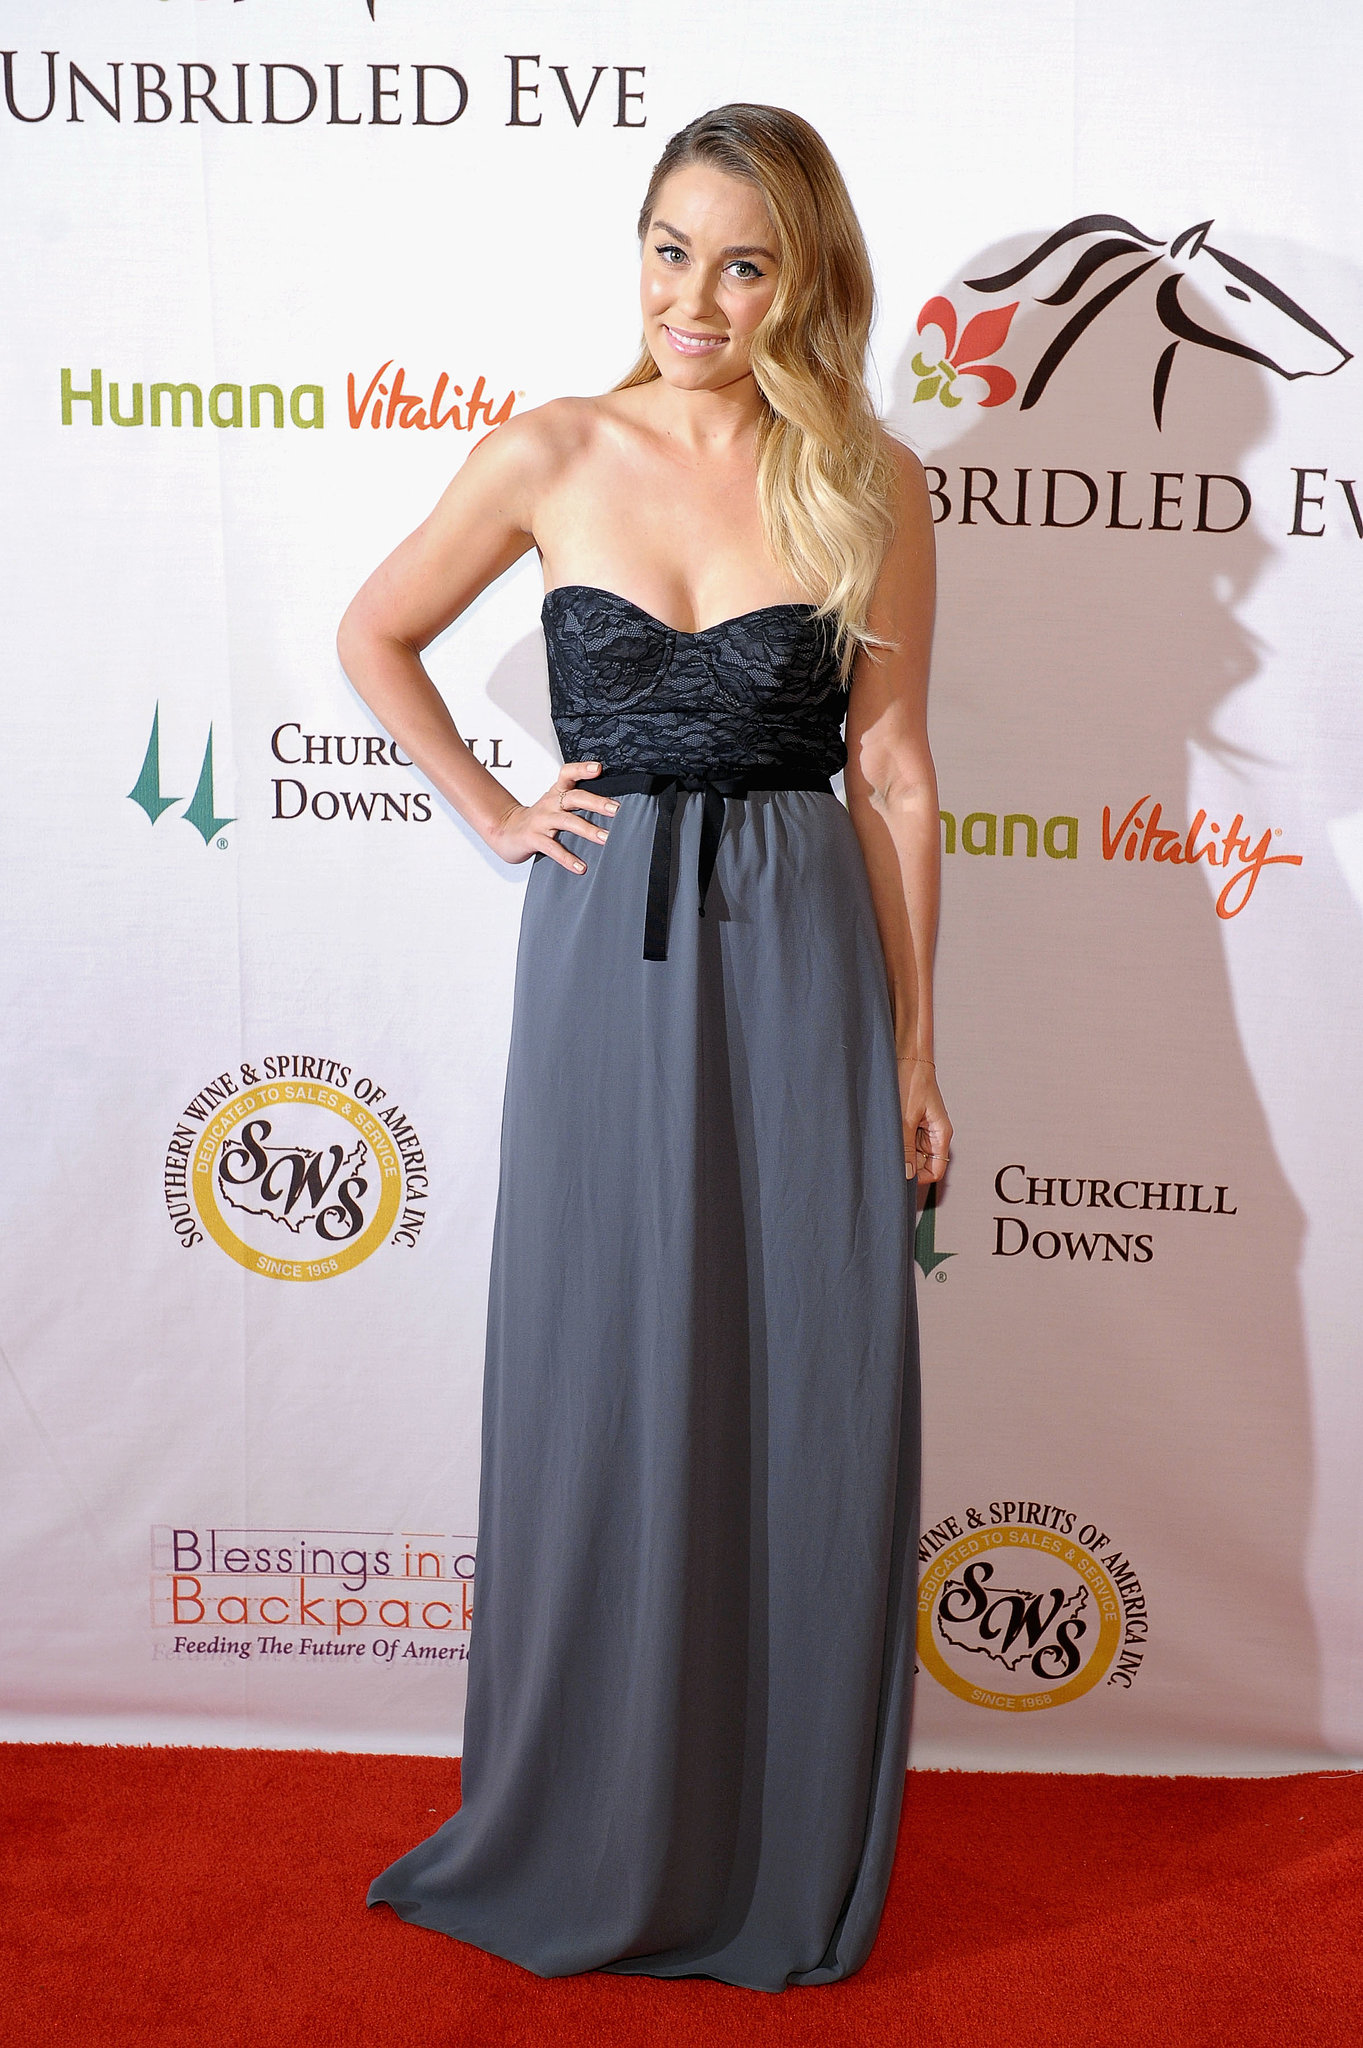 Lauren wore a strapless gown from her own Paper Crown collection on the red carpet at the Unbridled Eve Gala ahead of the Kentucky Derby in May. Lesson from Lauren: bows can be sweet and sophisticated.